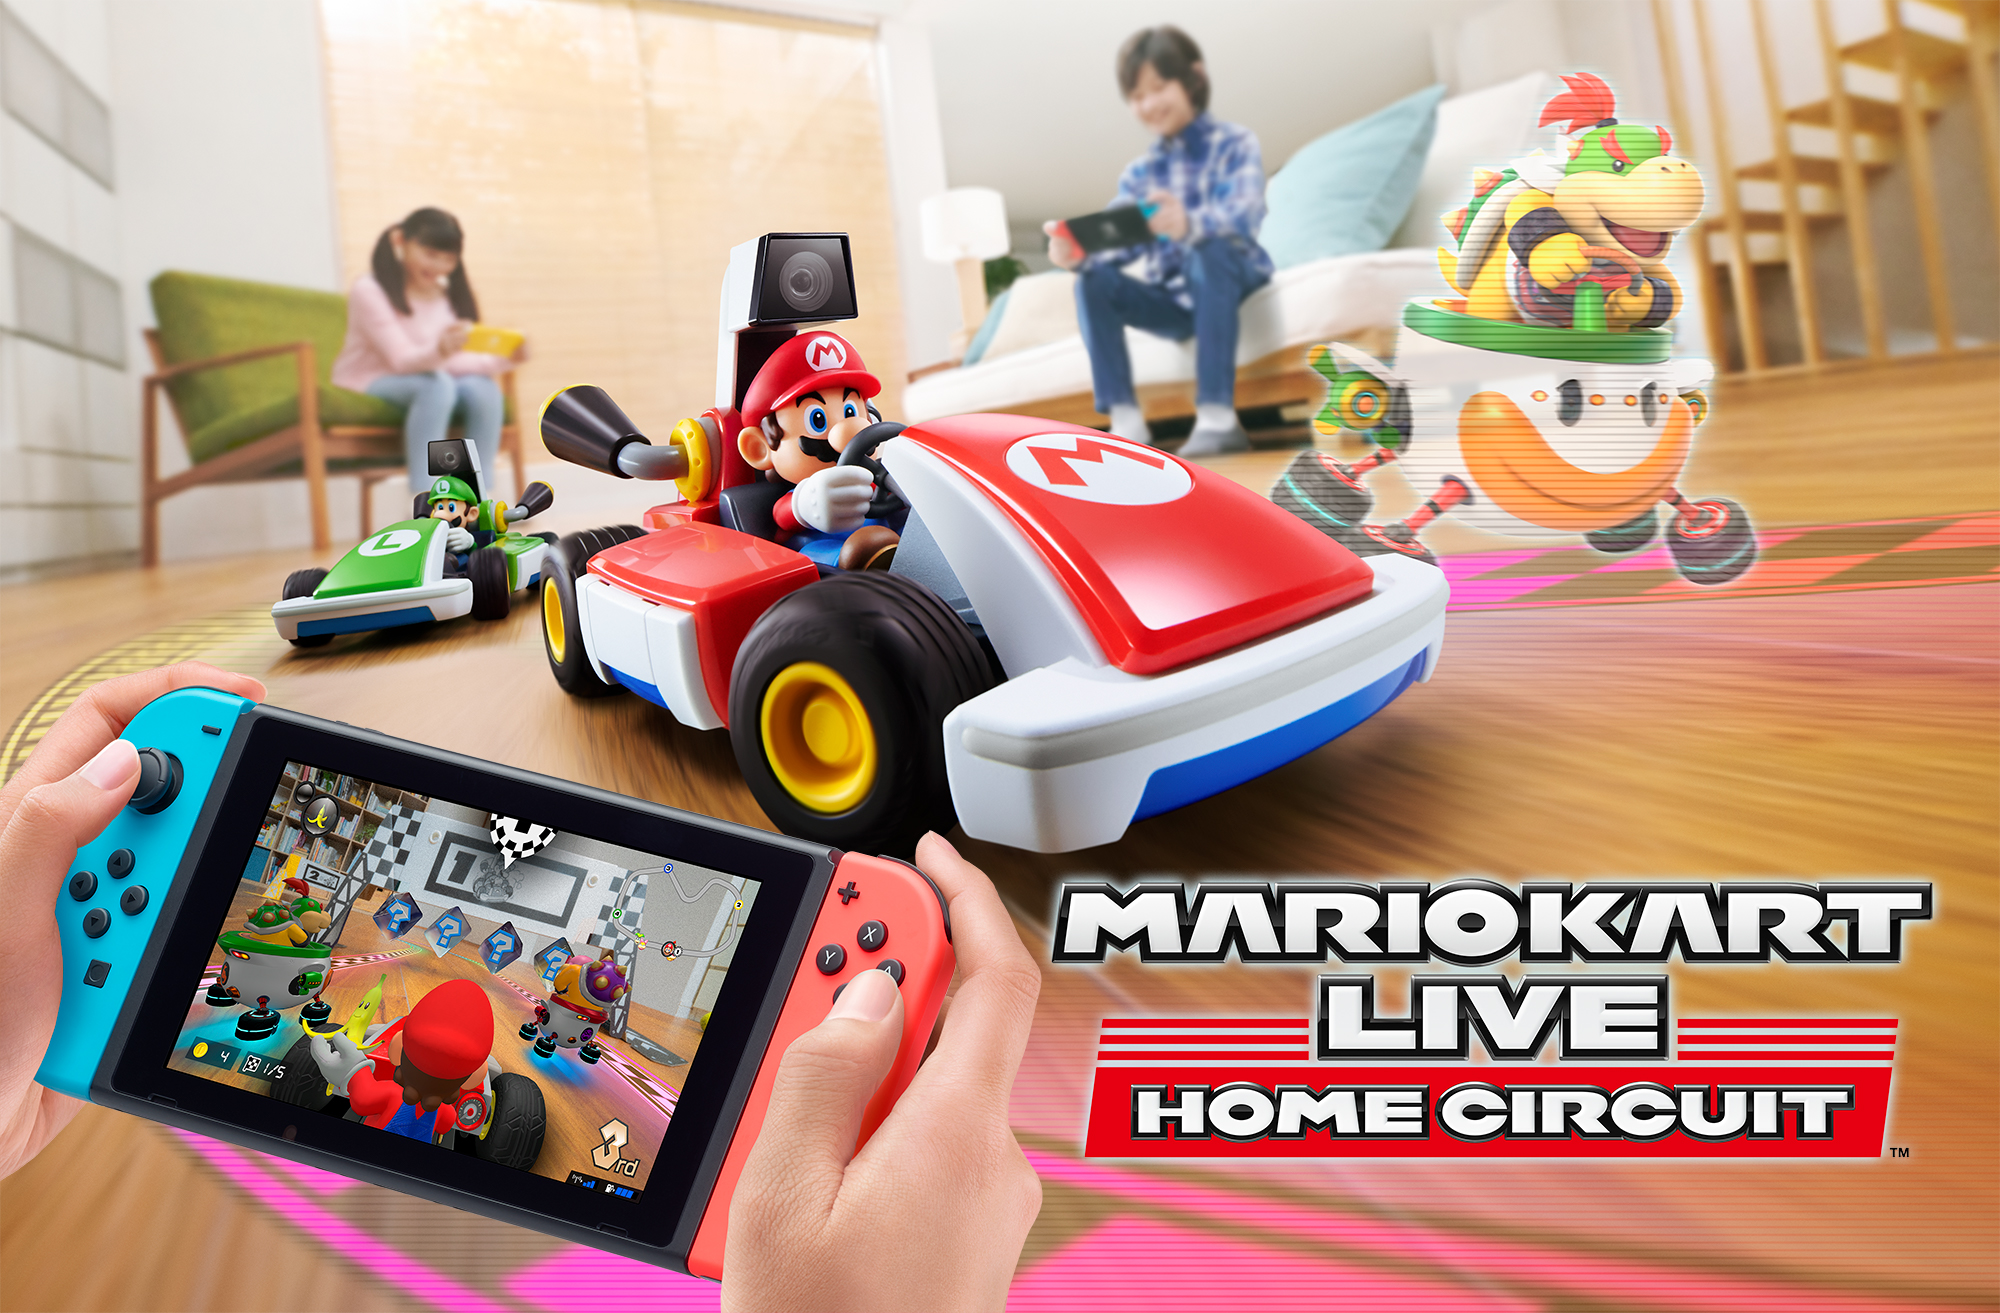 New Trailer Gives an In-depth Look at Mario Kart Live: Home Circuit for Nintendo Switch